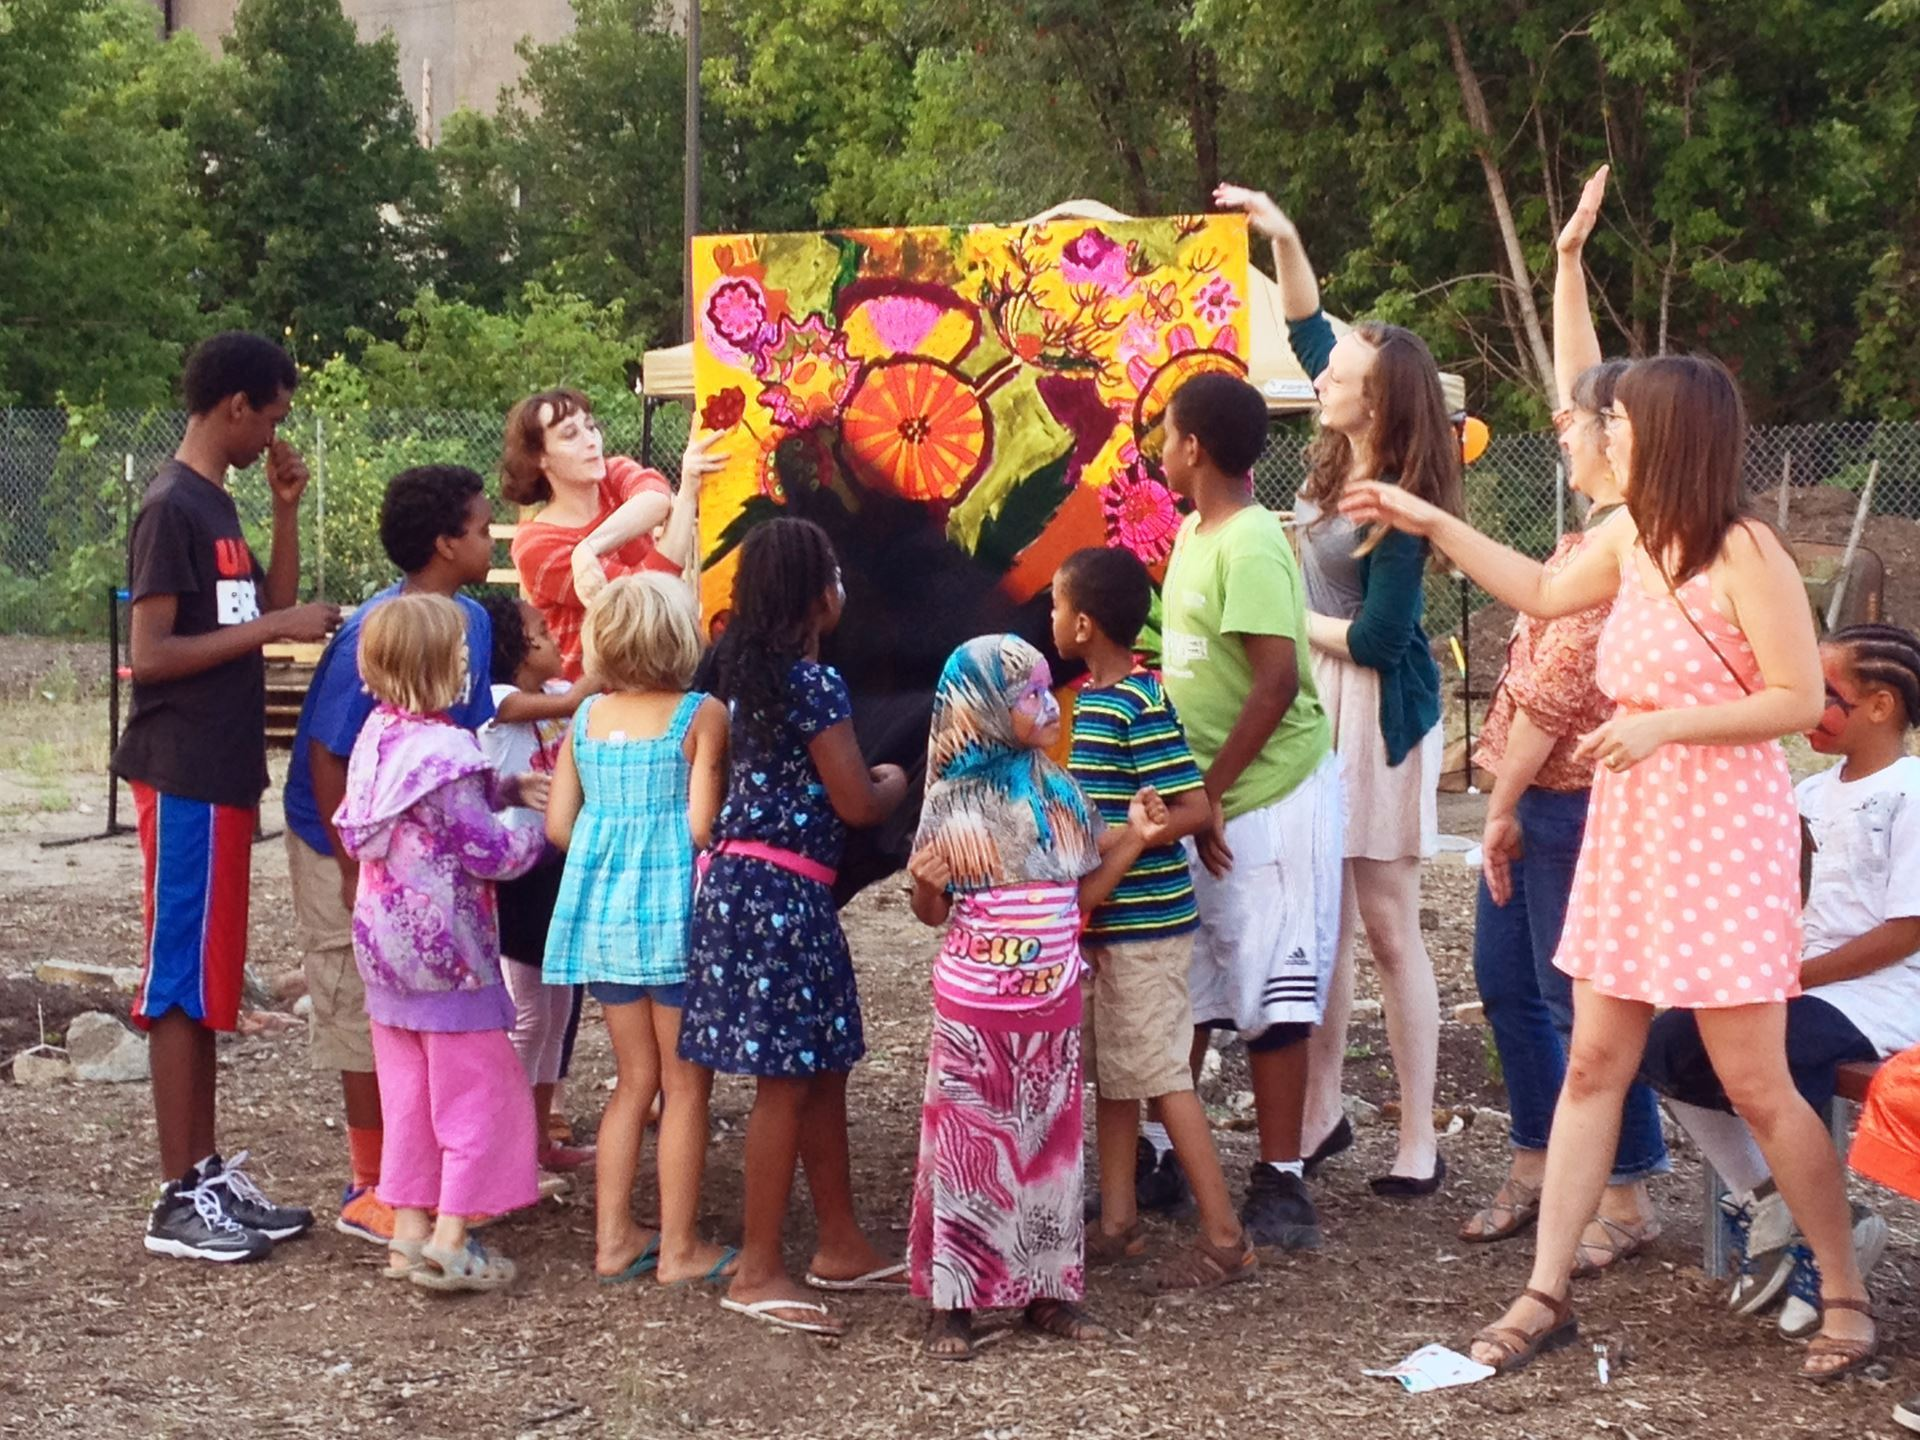 Photo of a group of youth surrounding and looking at a large colorful painting outdoors.